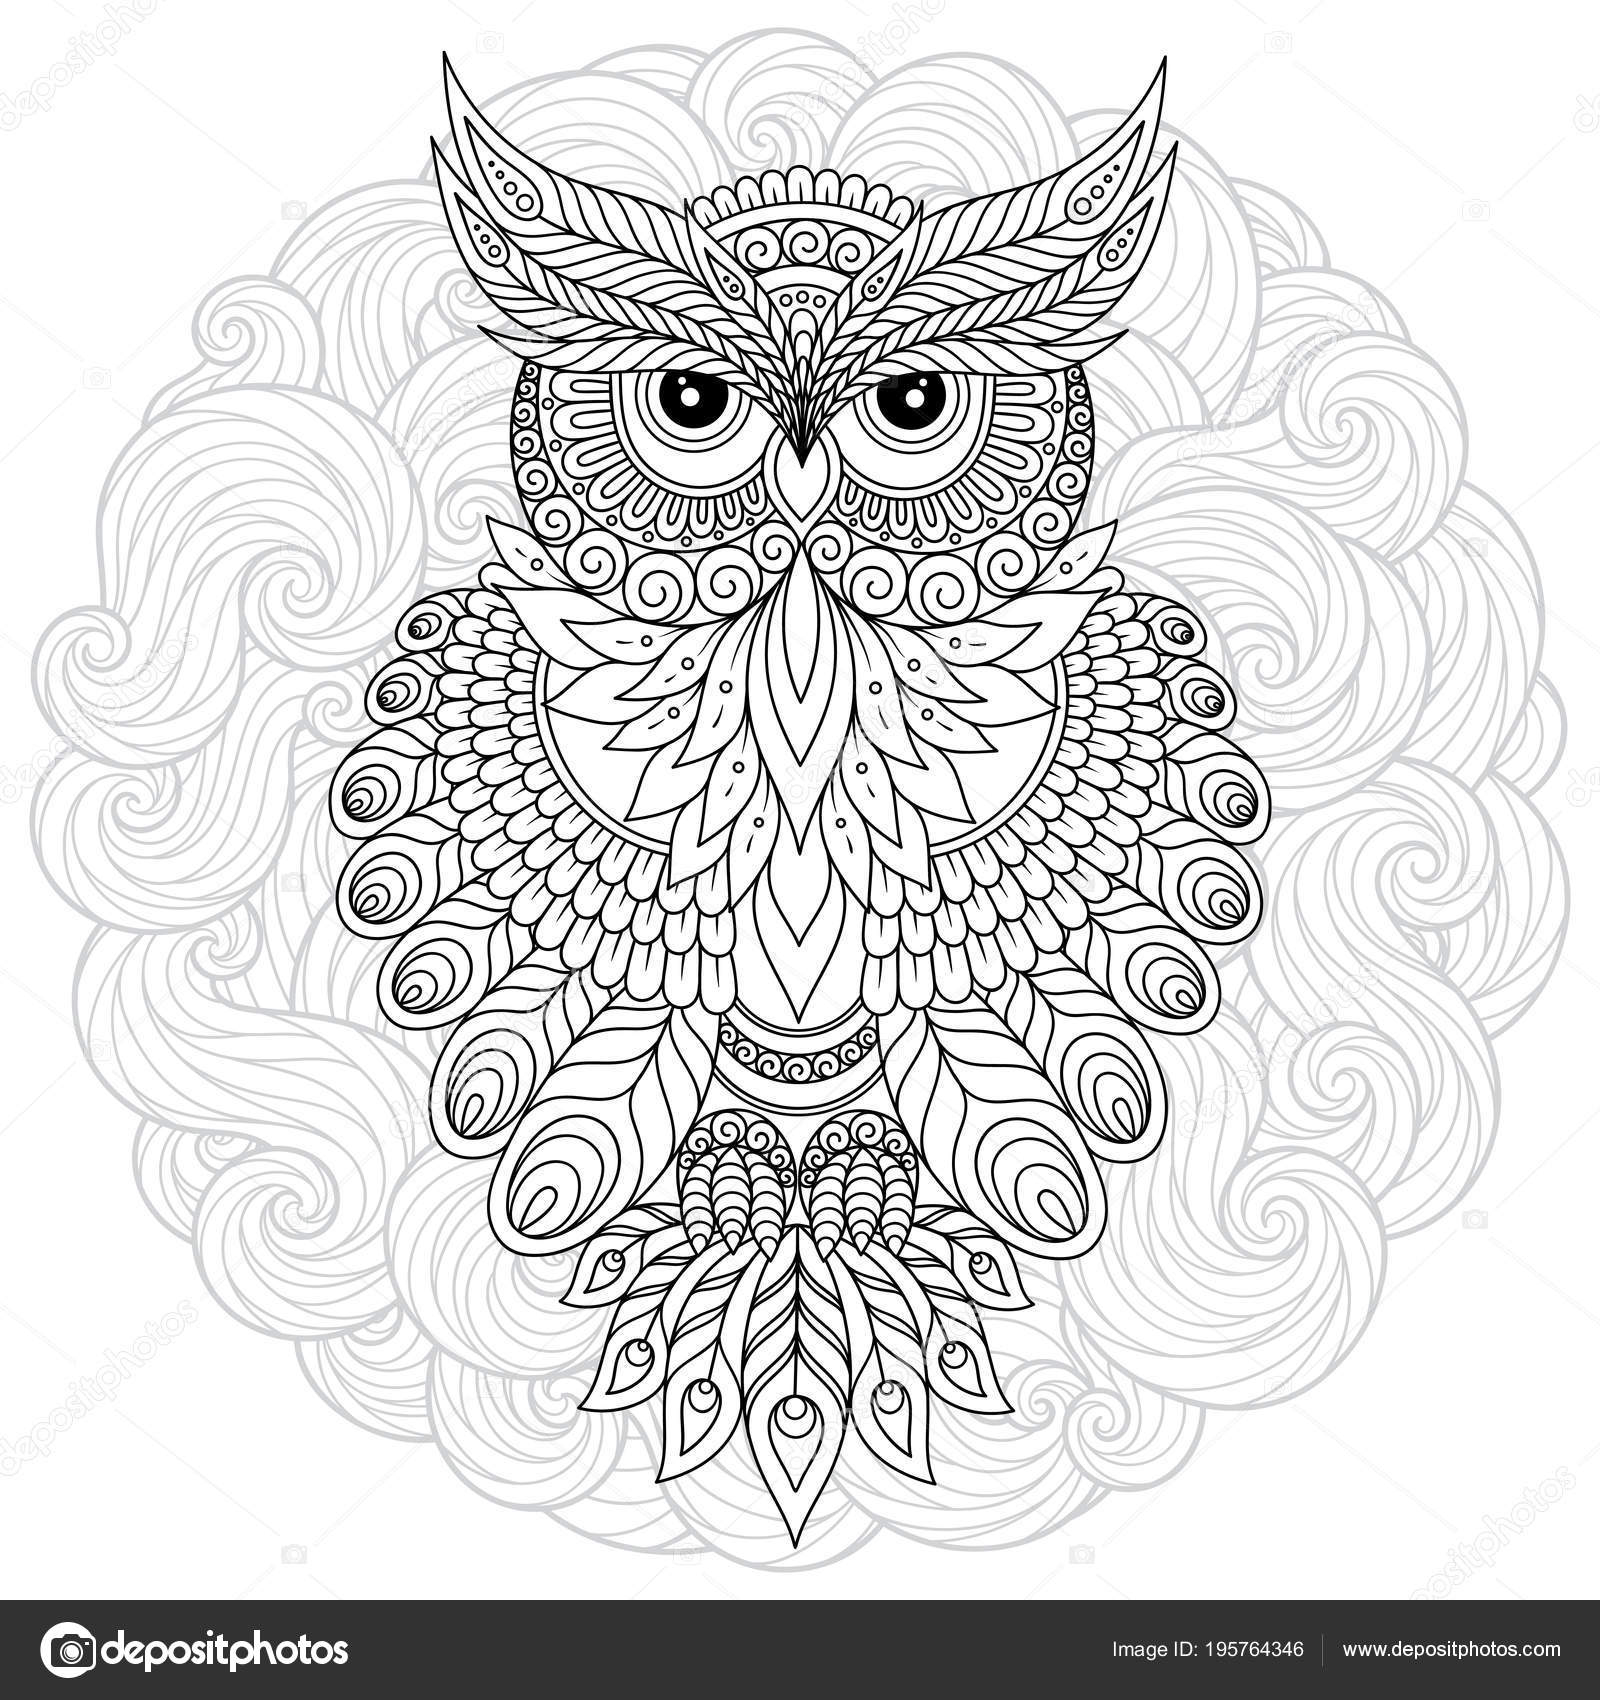 Coloring page with cute owl and floral frame. — Stock Vector ...